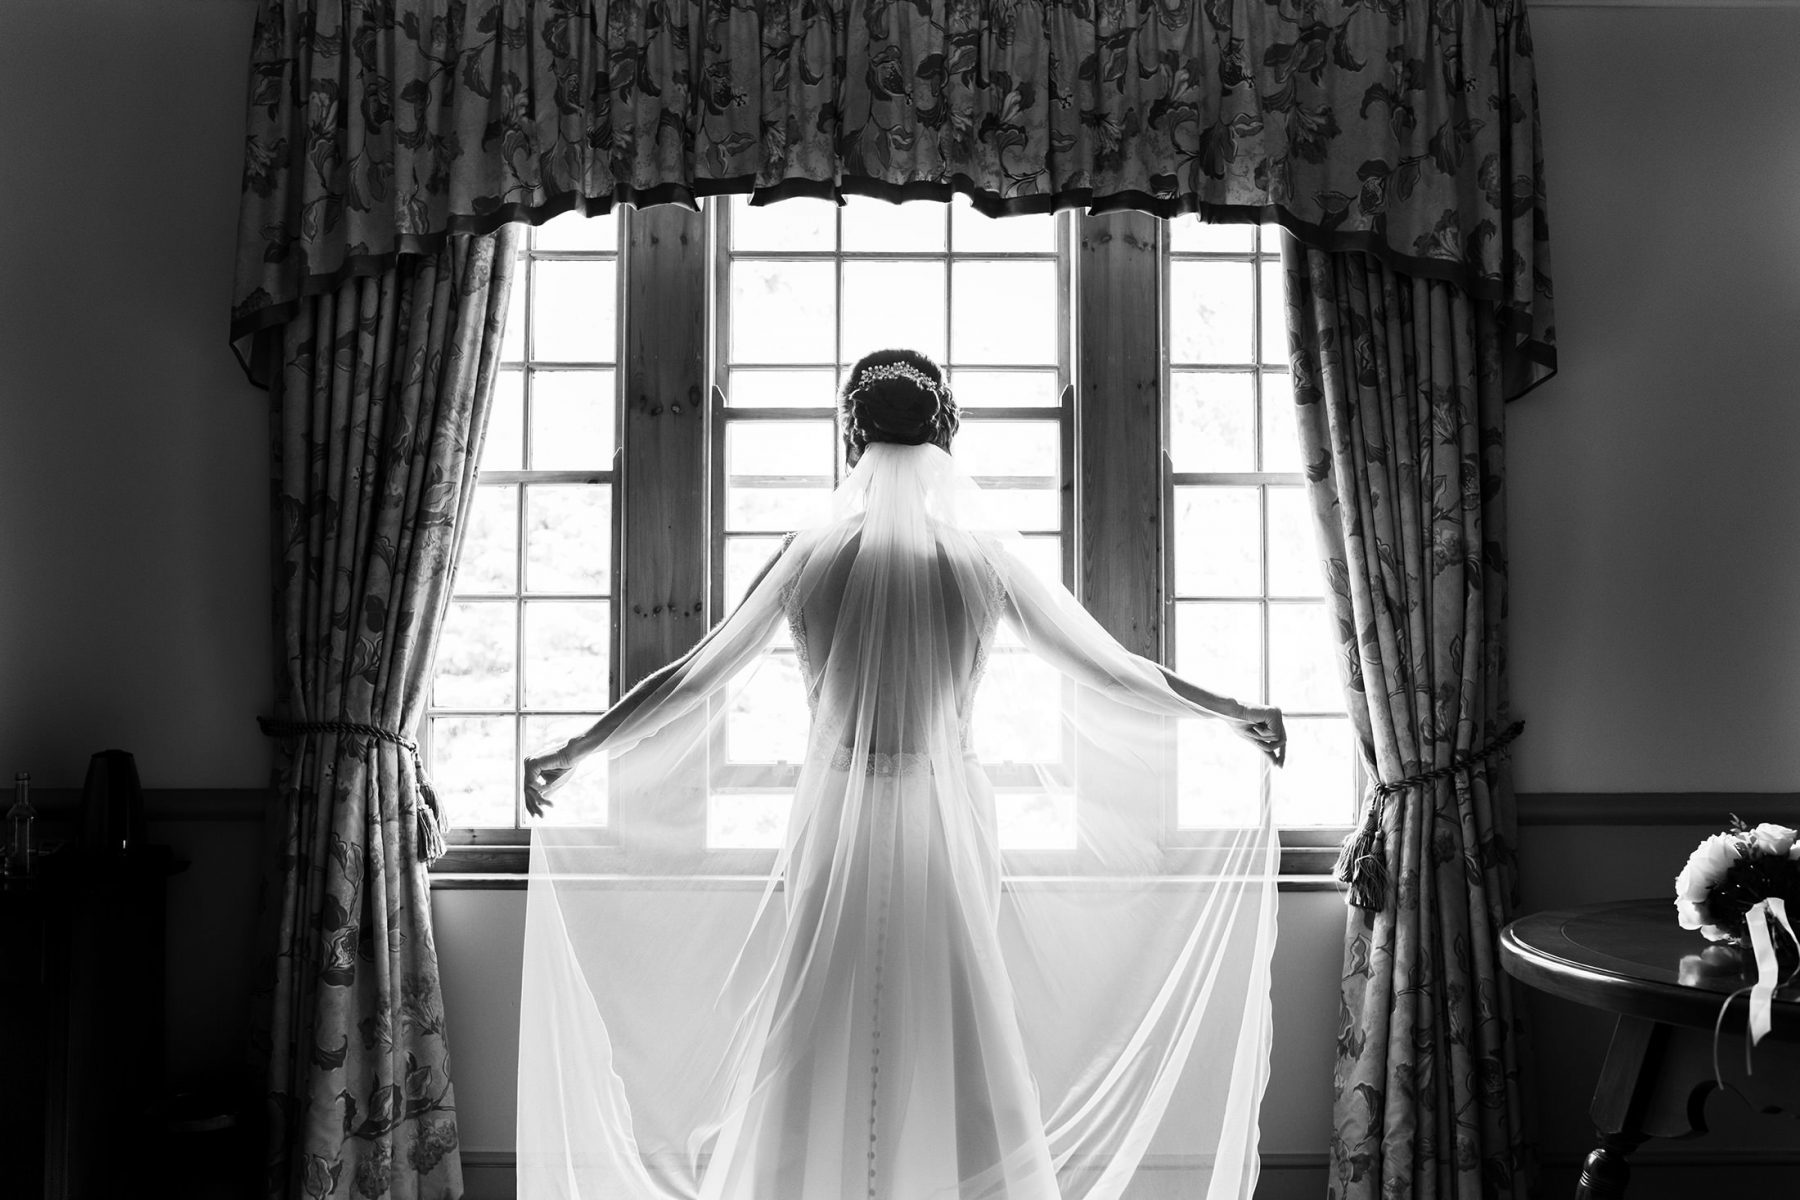 The bride is ready for here wedding at Nunsmere Hall, one of the most pouplar venues in Cheshire for Country House weddings